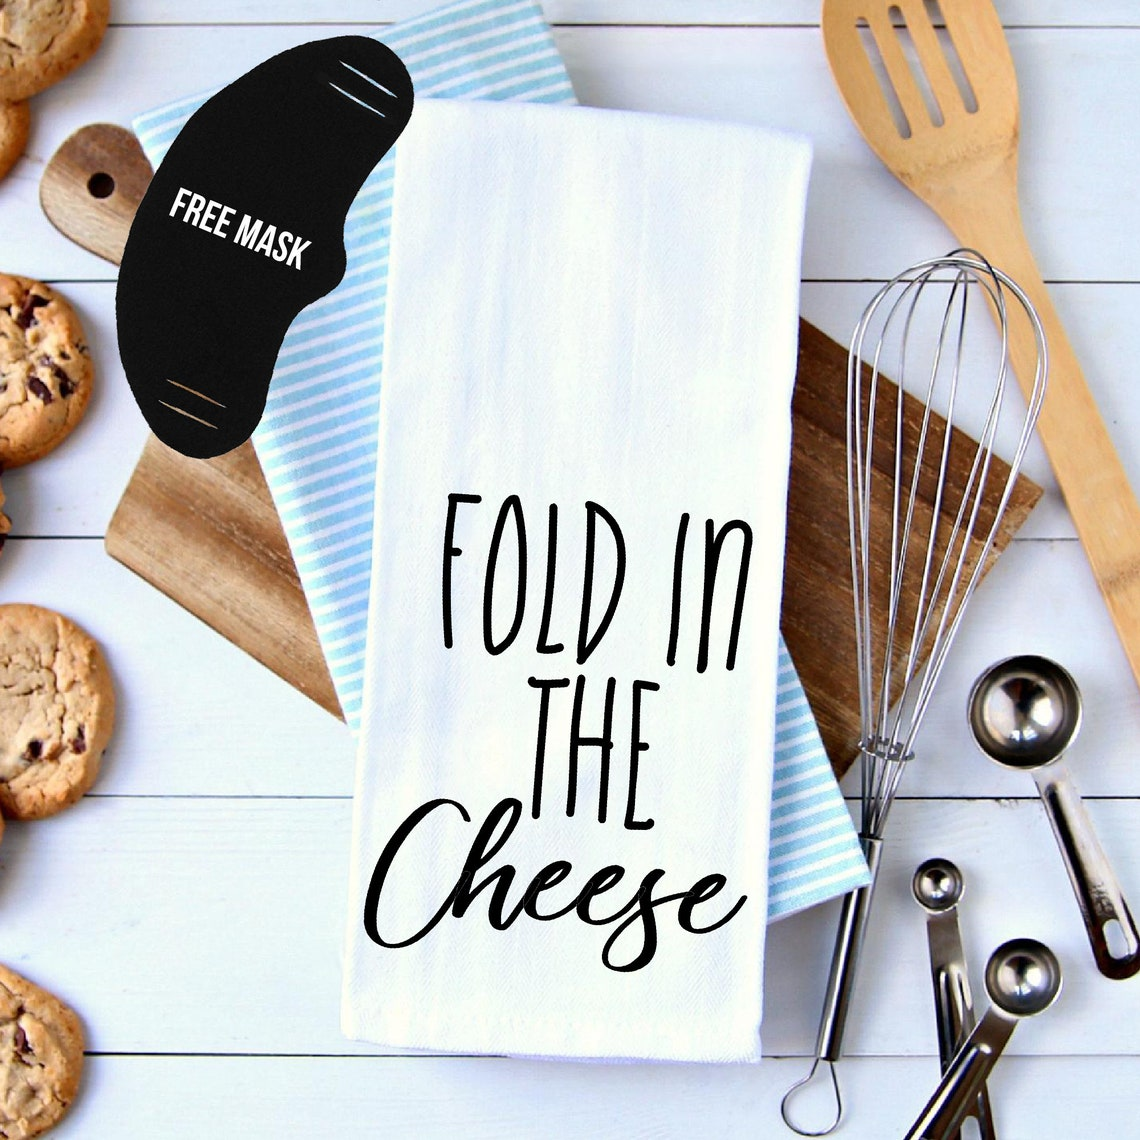 Top 27 Best Schitt's Creek Gifts from Etsy featured by top Seattle lifestyle blogger, Marcie in Mommyland: Favorite SC's Quotes Kitchen Towels Bundle-Pick 2 From 12 Fold In The Cheese